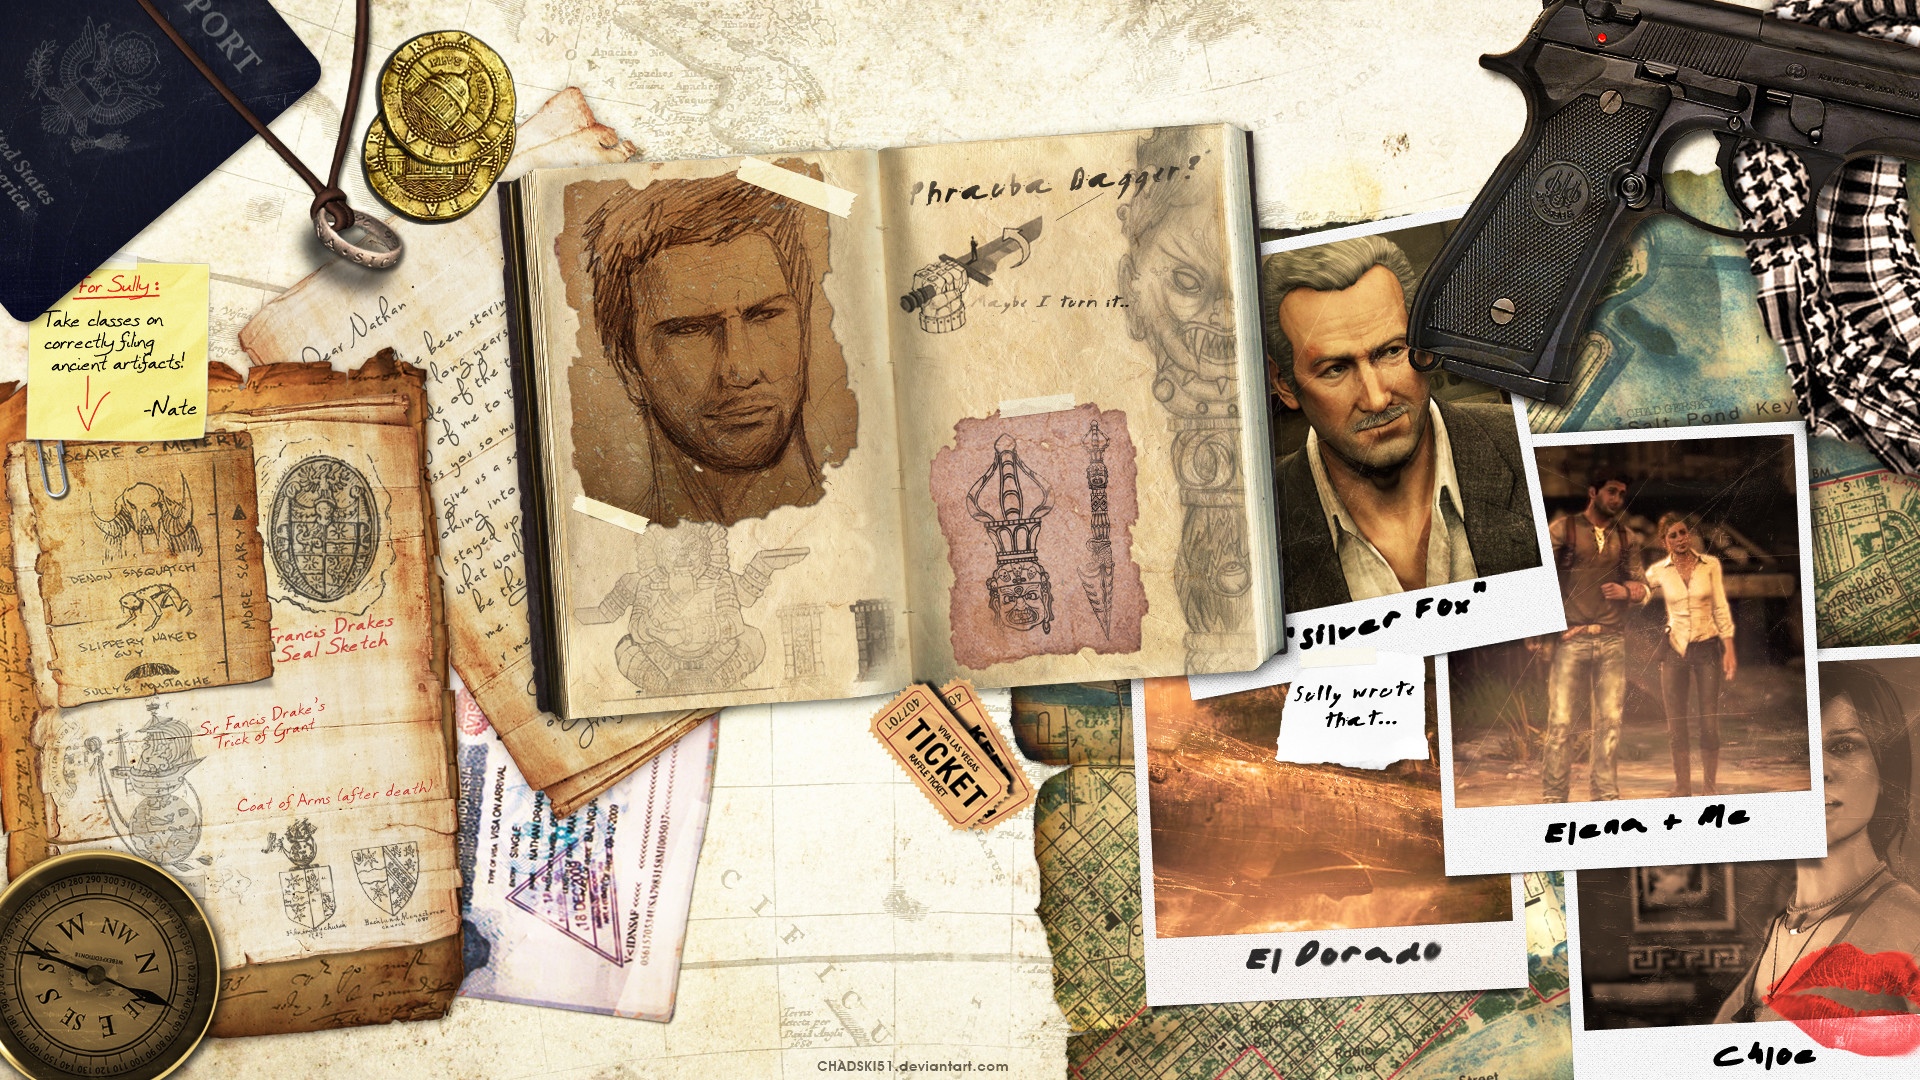 1920x1080 Uncharted Desktop Wallpaper by Chadski51 Uncharted Desktop Wallpaper by  Chadski51